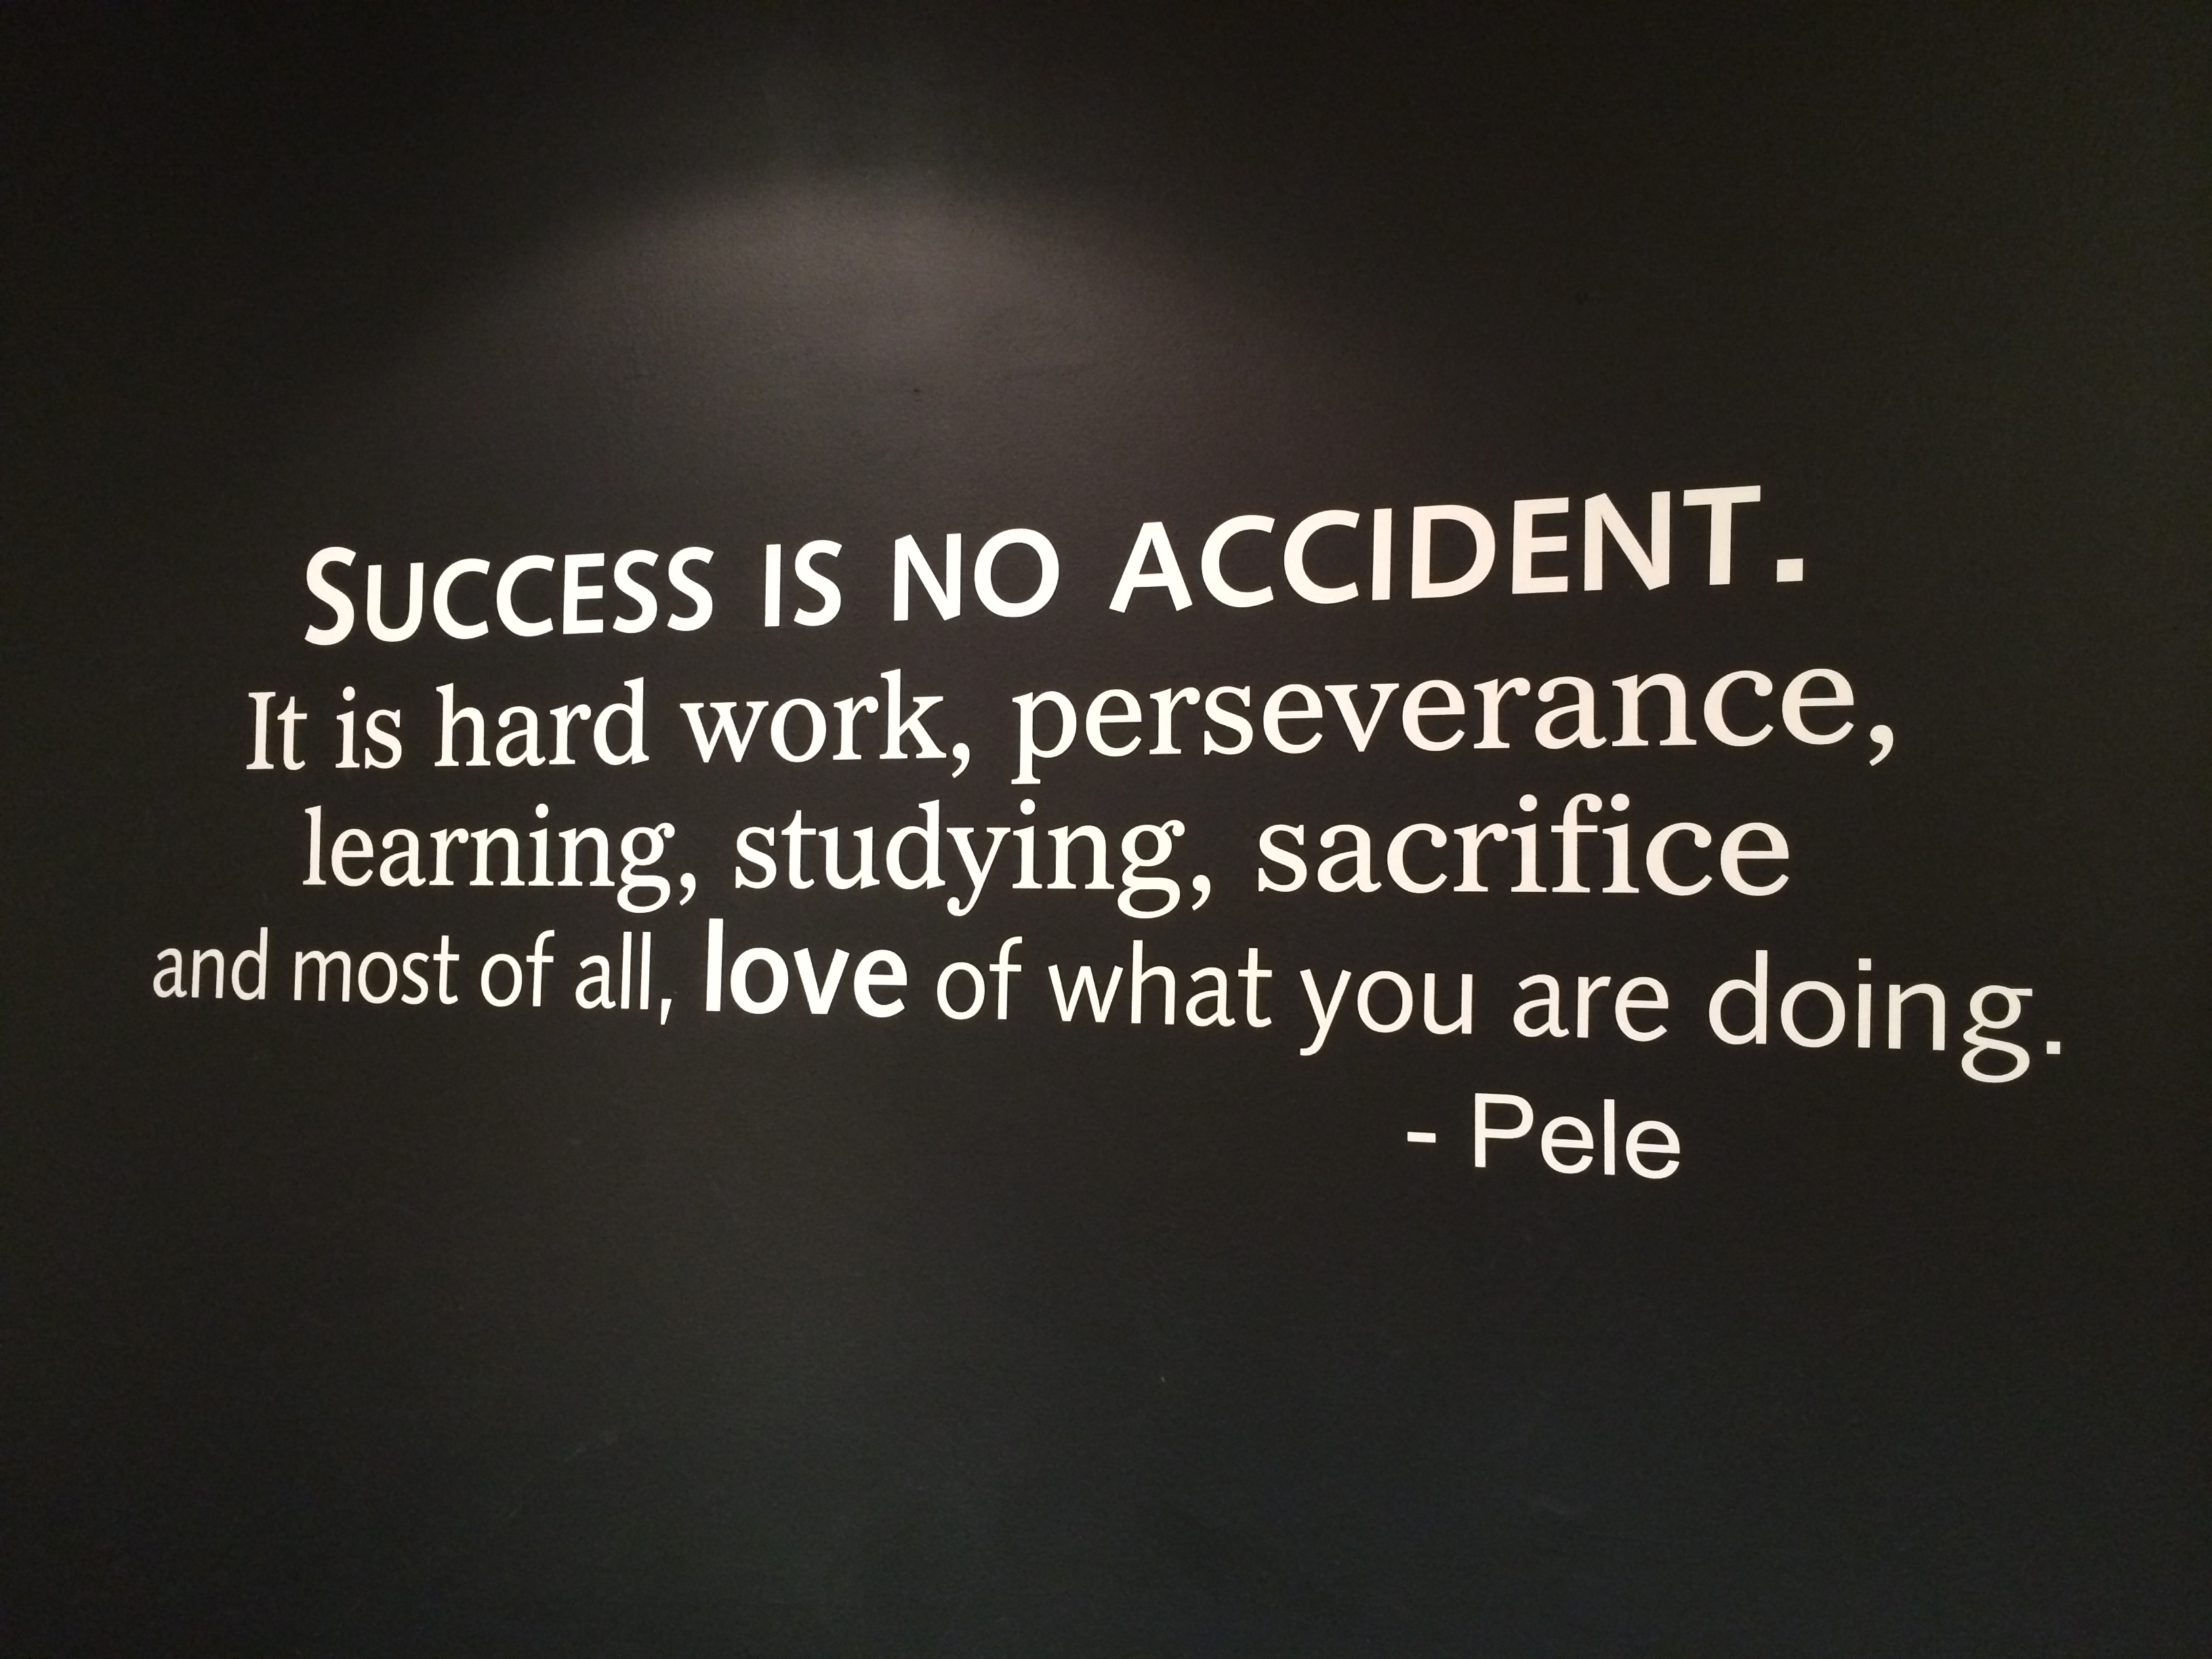 Motivation Monday: Success